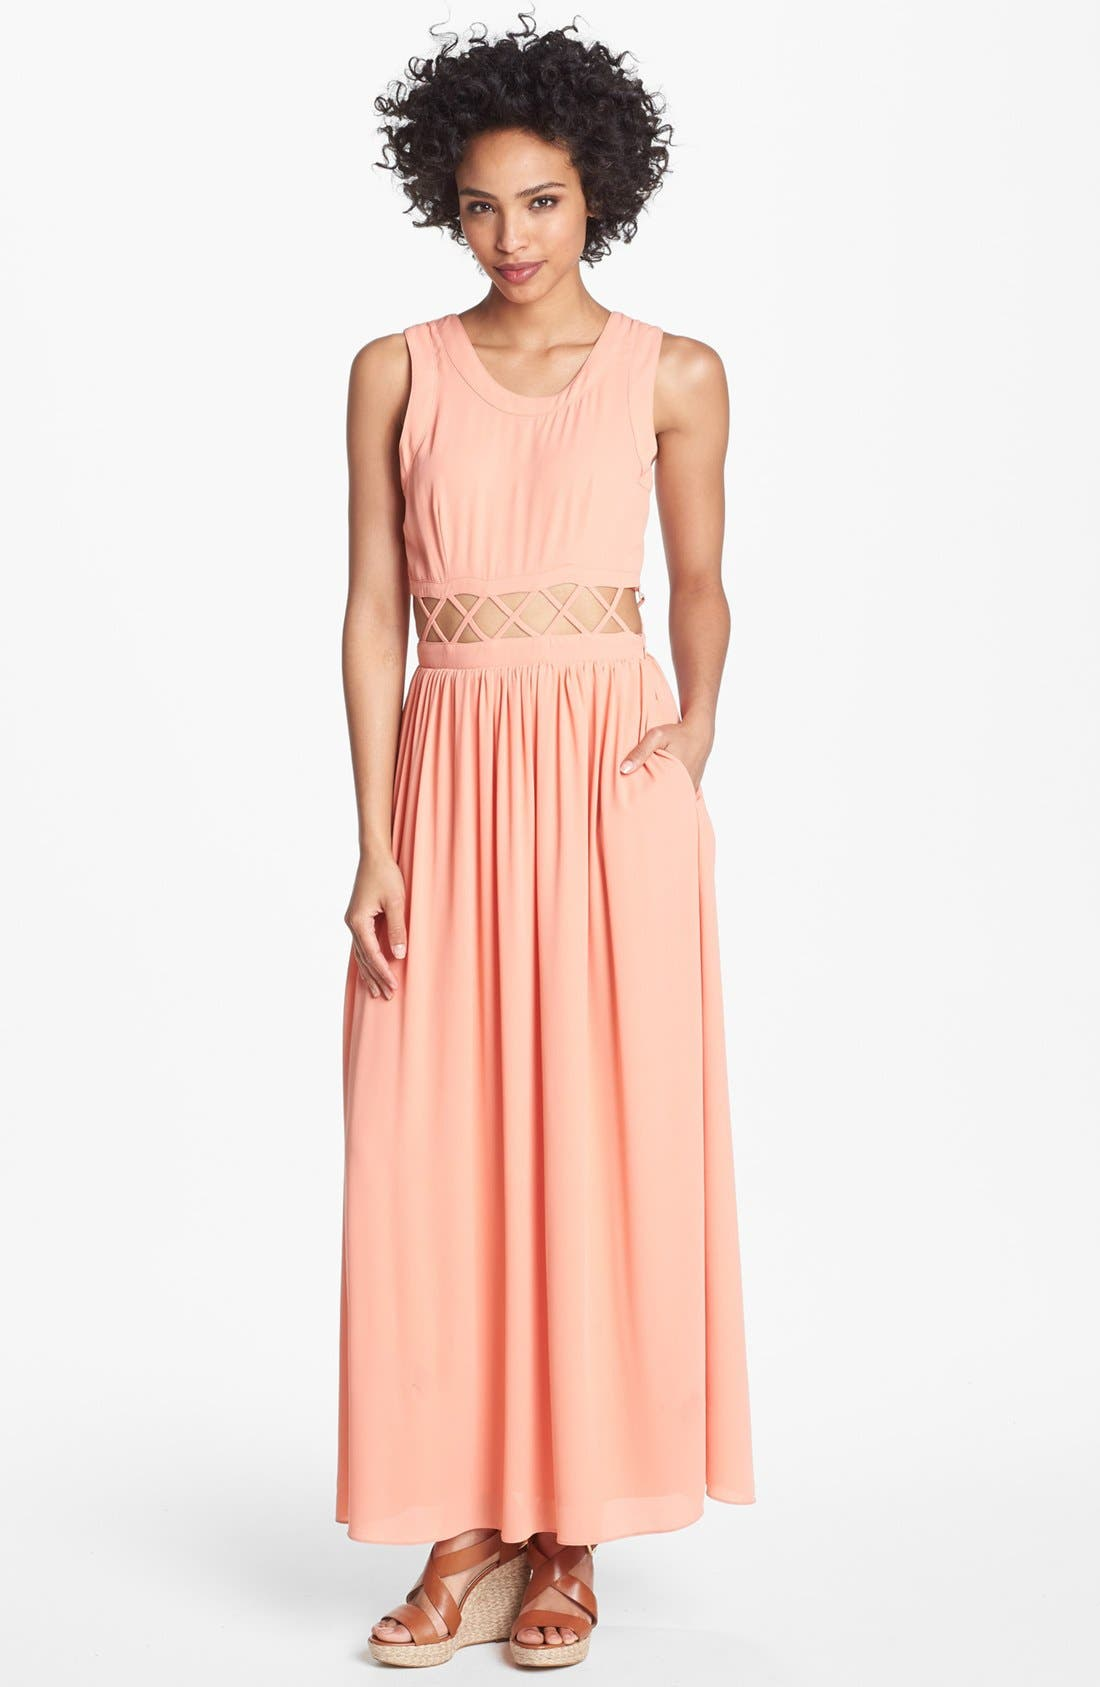 Main Image - Lovers + Friends 'Calling You' Cutout Maxi Dress